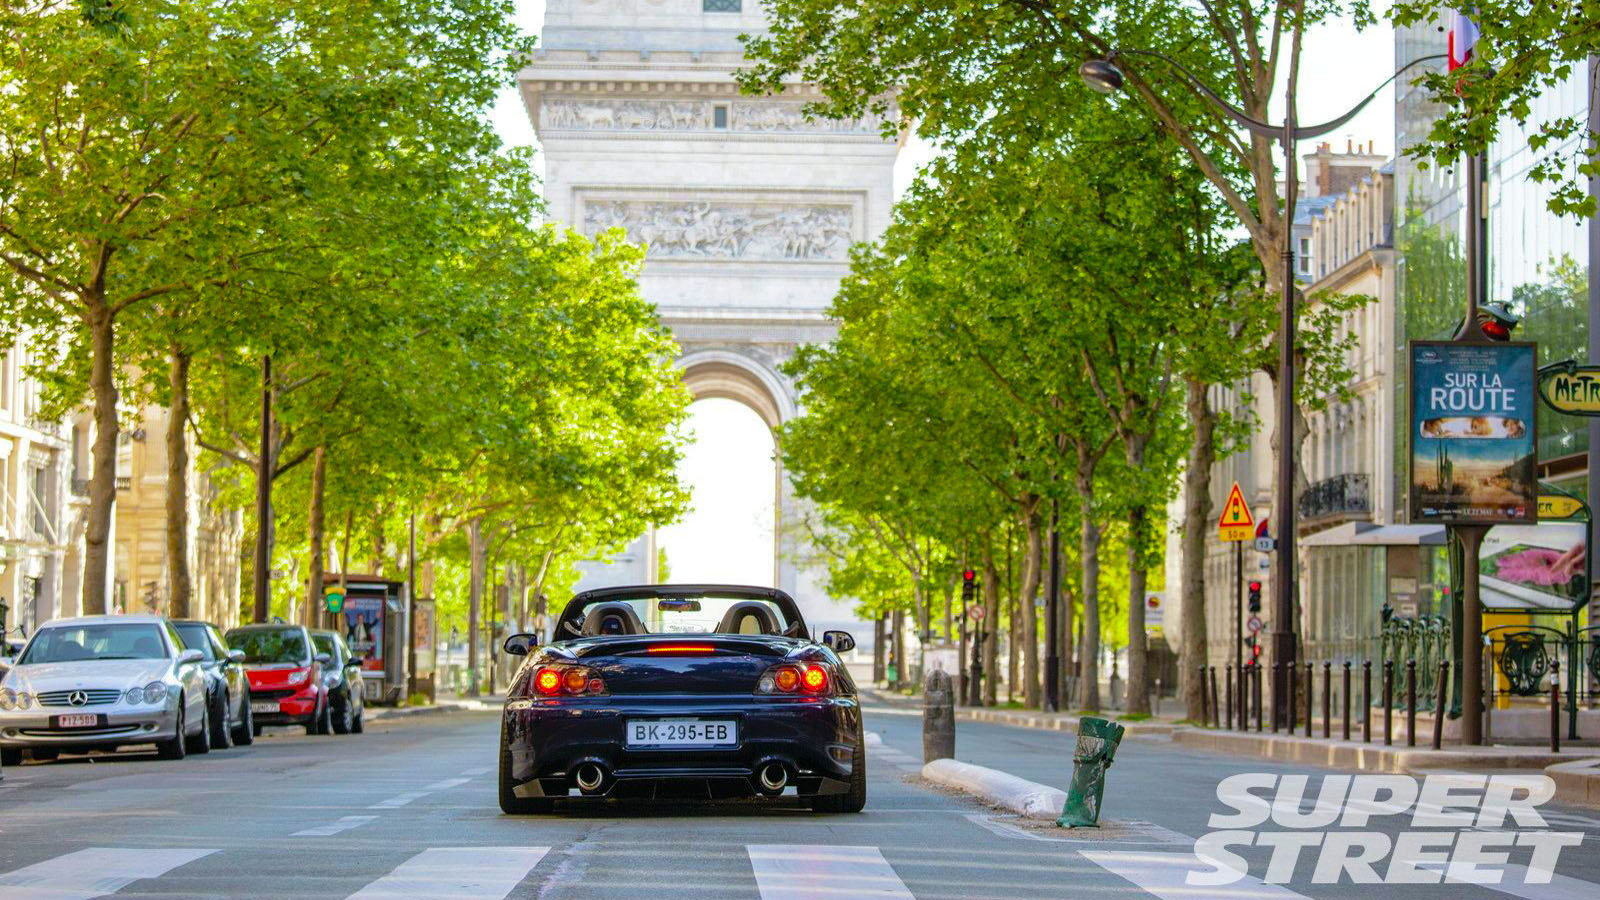 This Parisian S2000 is Fashionable Fancy